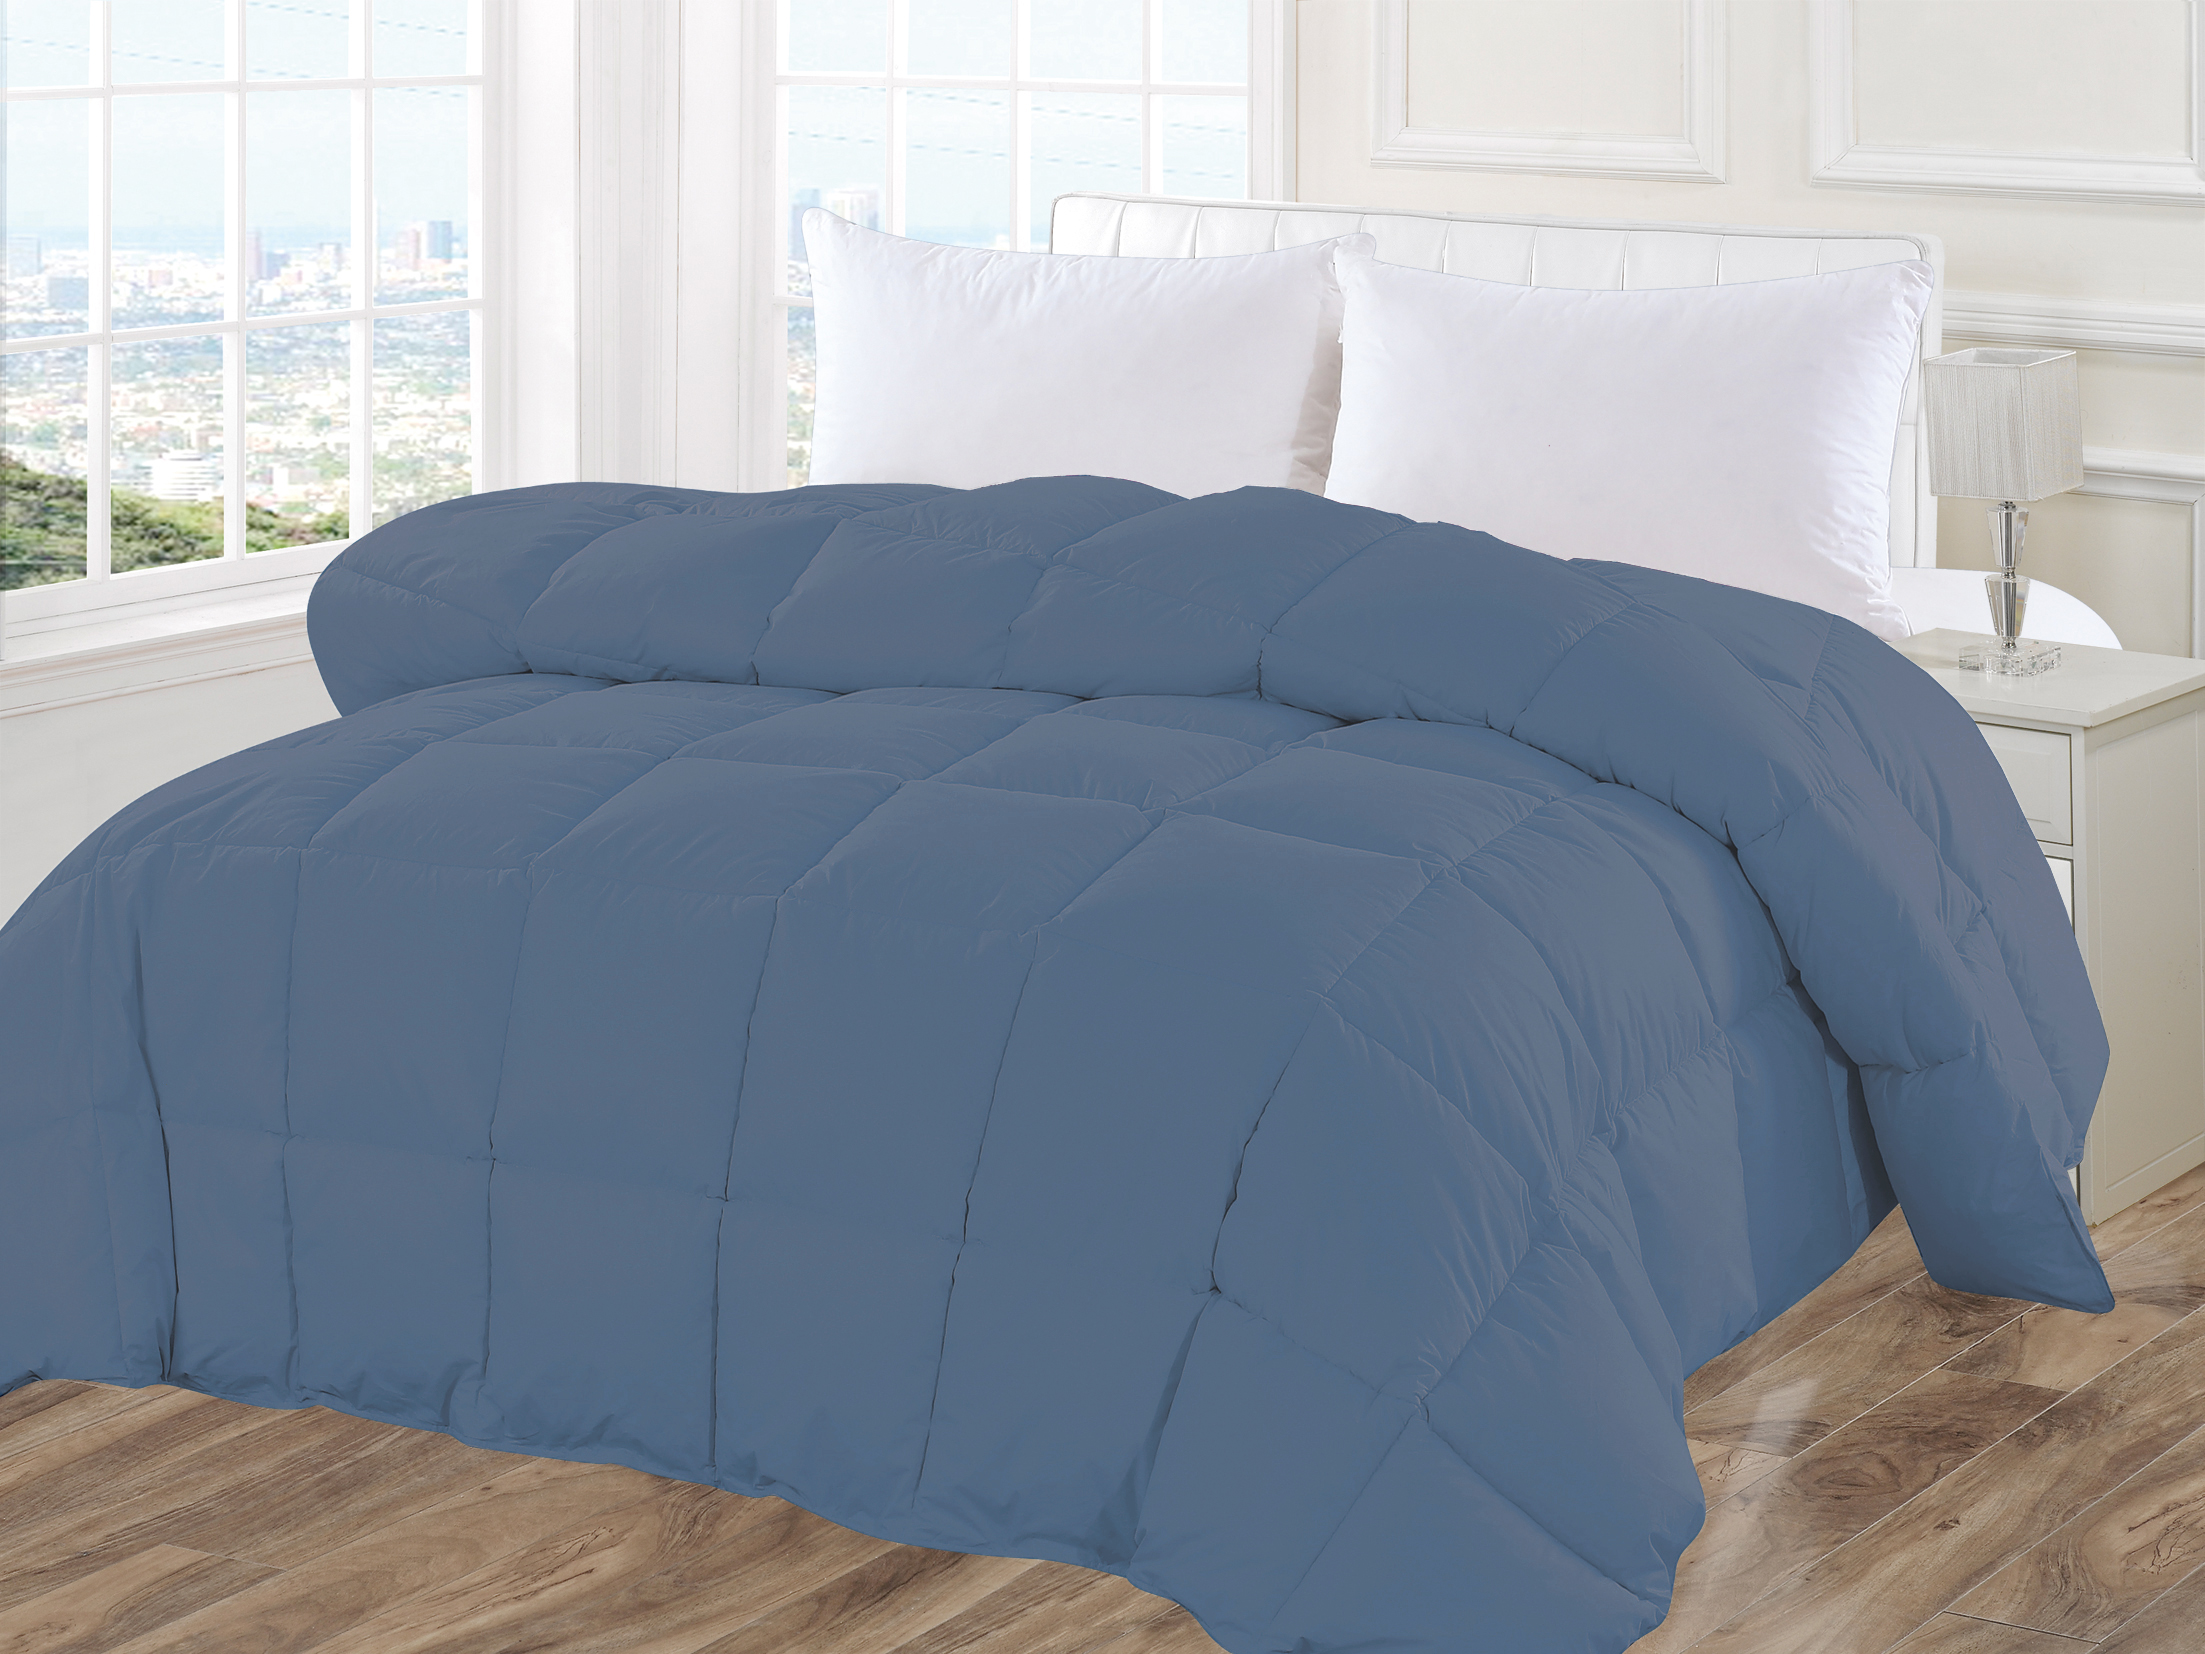 206568, 206896 Acadia Down and Cloud Down Alt Comforter - ROCK BLUE.jpg